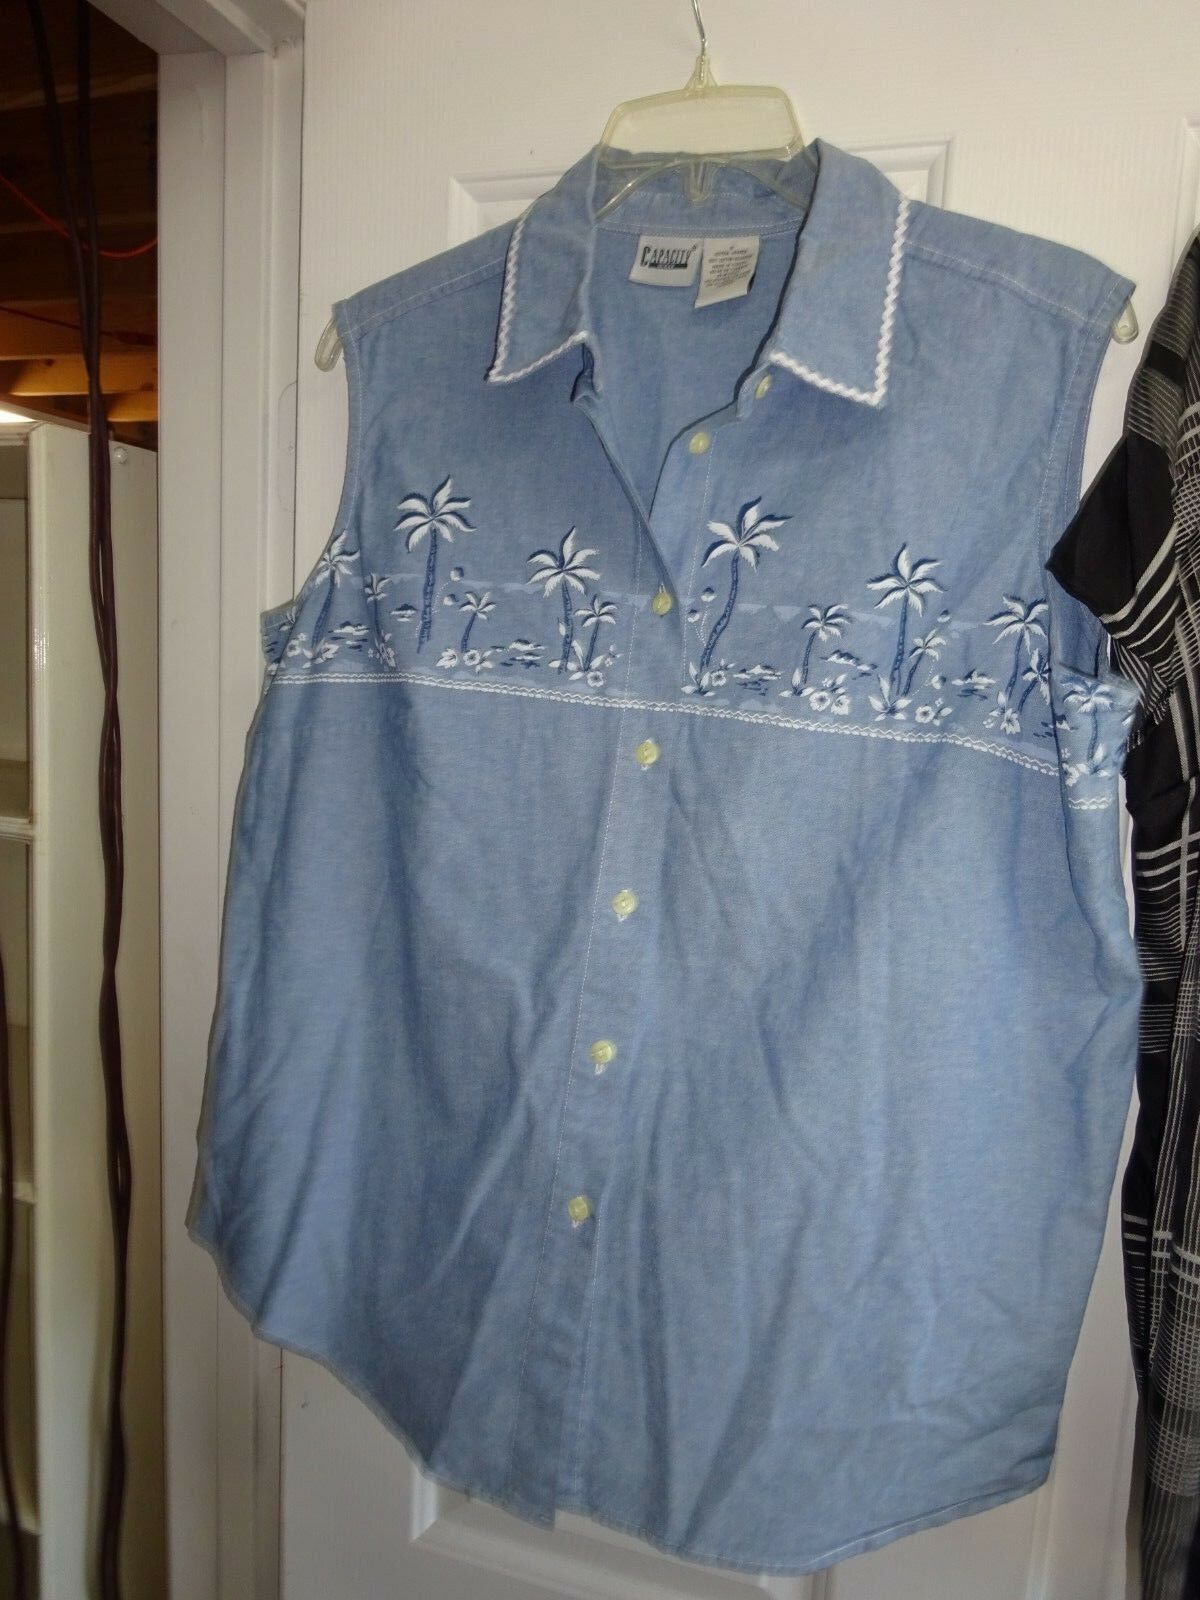 Capacity Women Sleeveless Top Blouse 100% Cotton Faded Denim bluee Palm Trees 1X